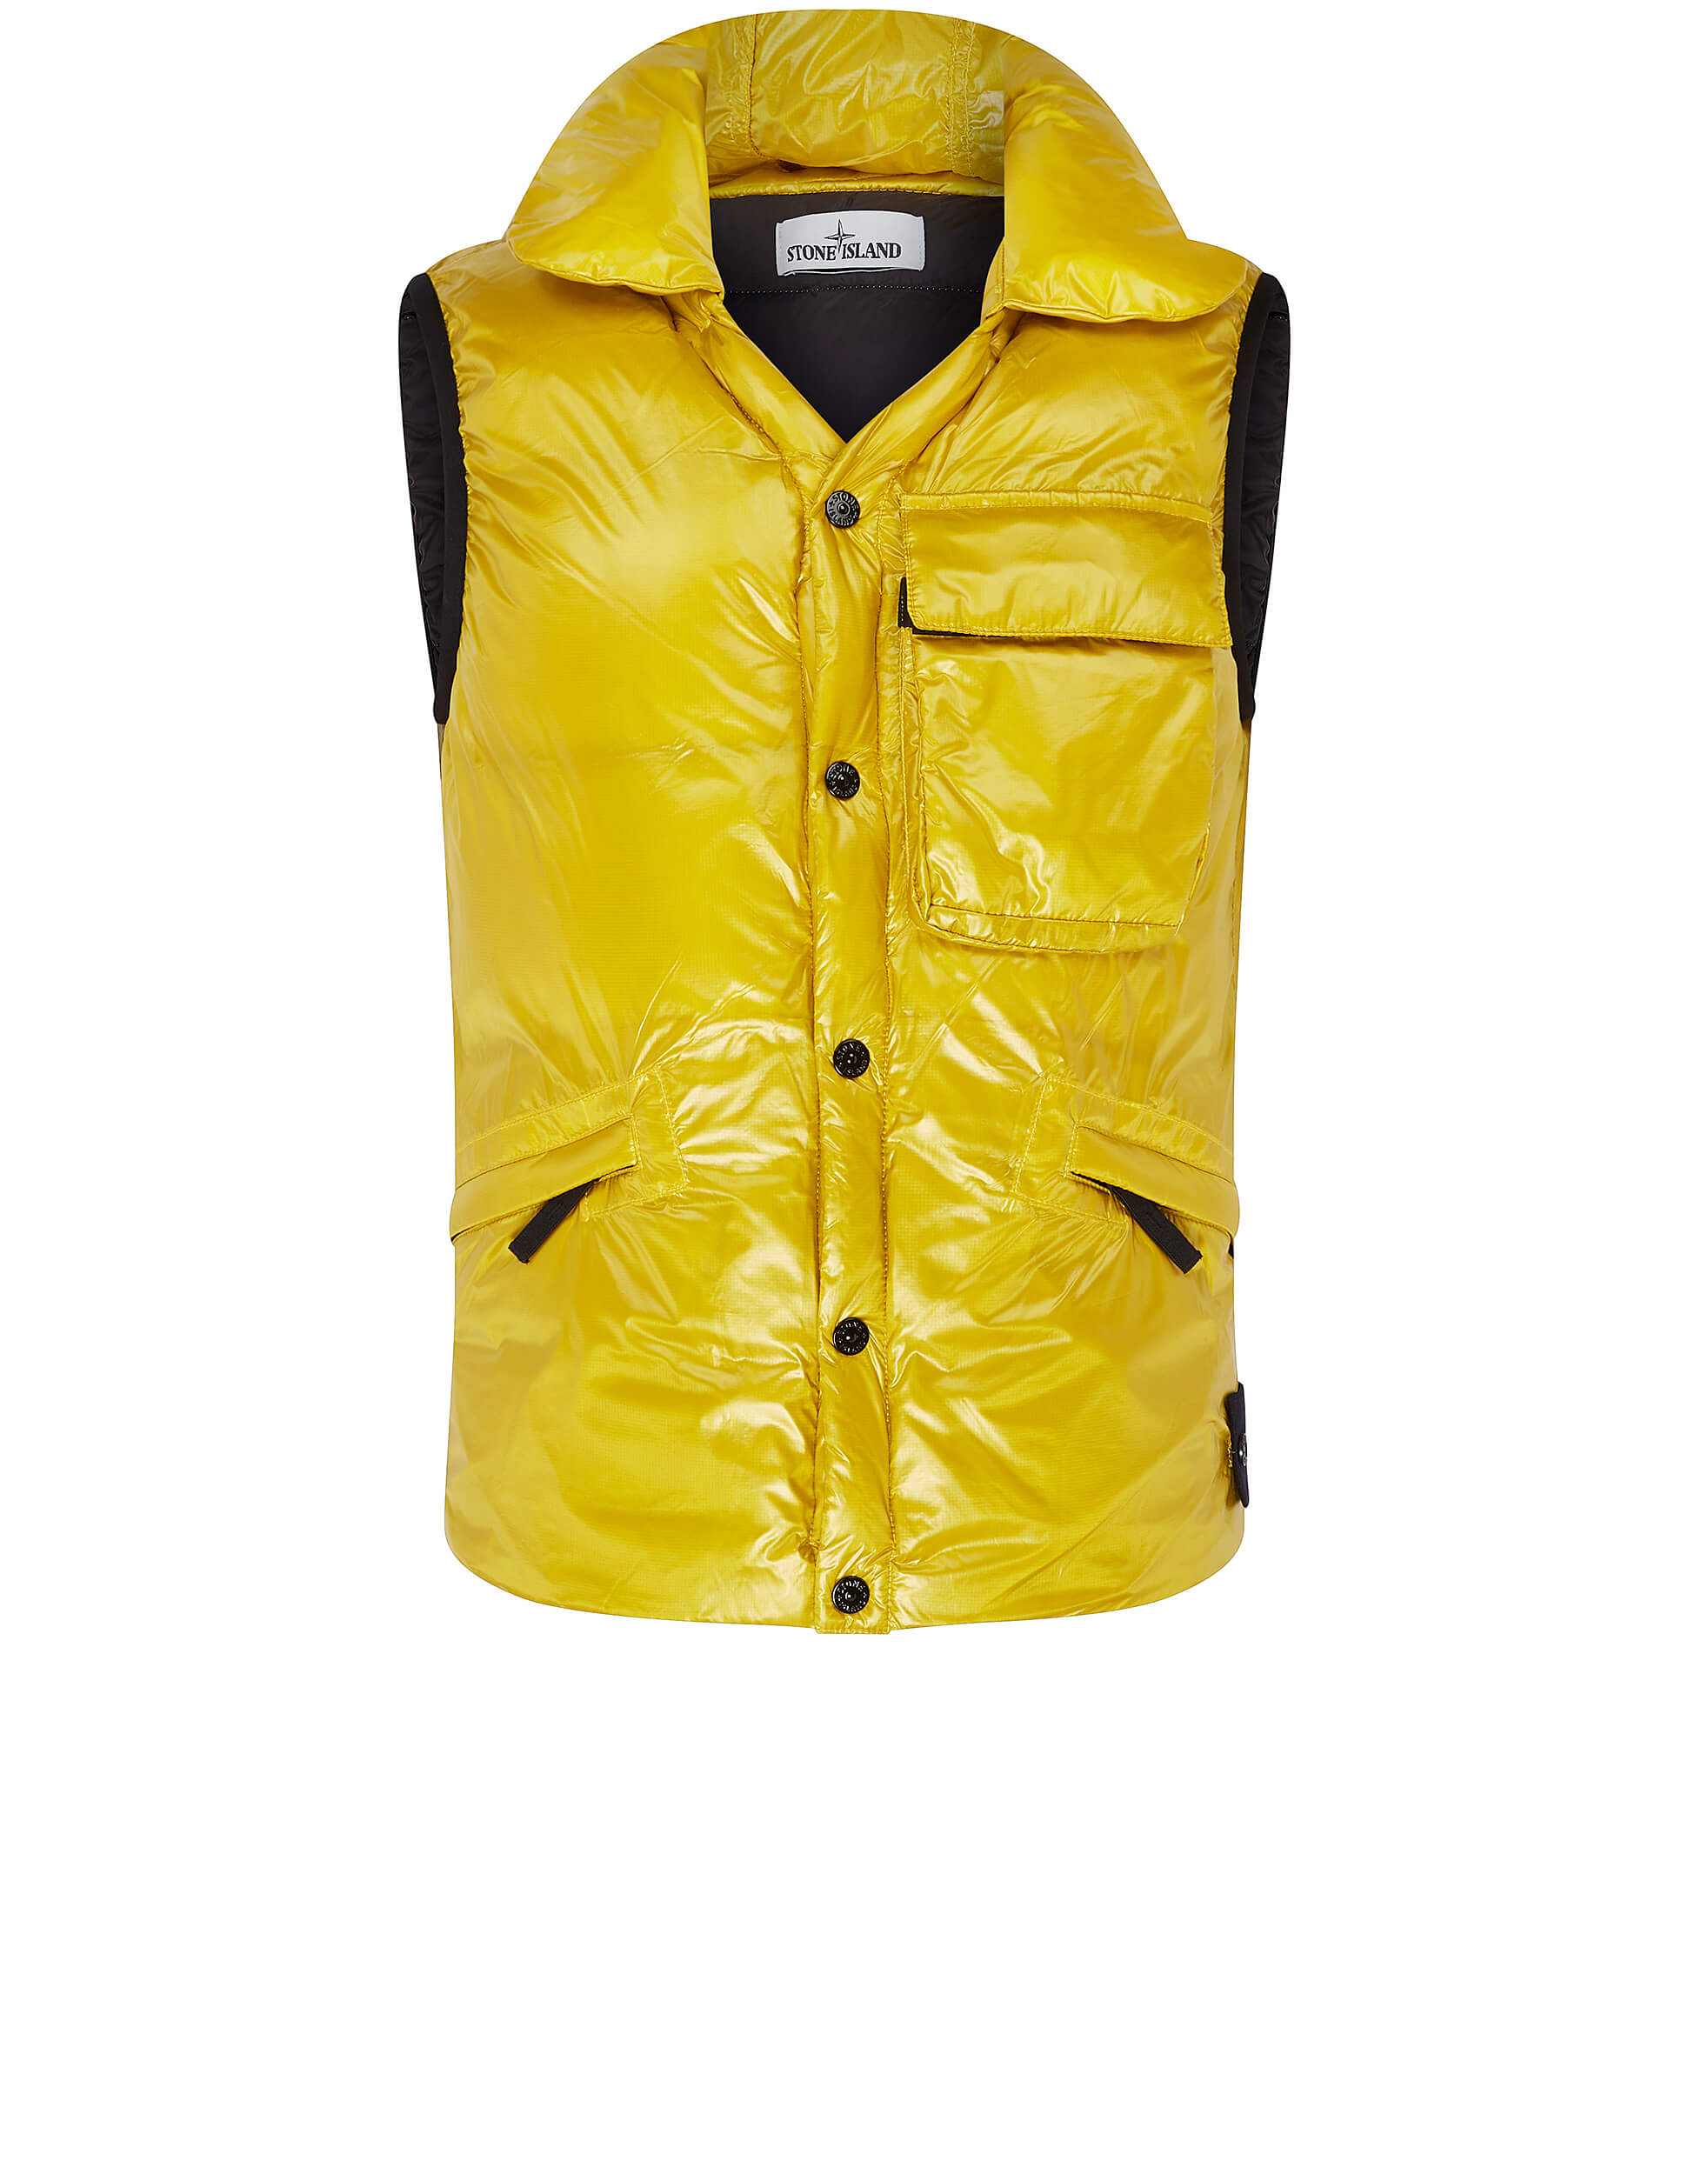 G0321 Pertex Quantum Y With Primaloft Insulation Technology Waistcoat in Mustard